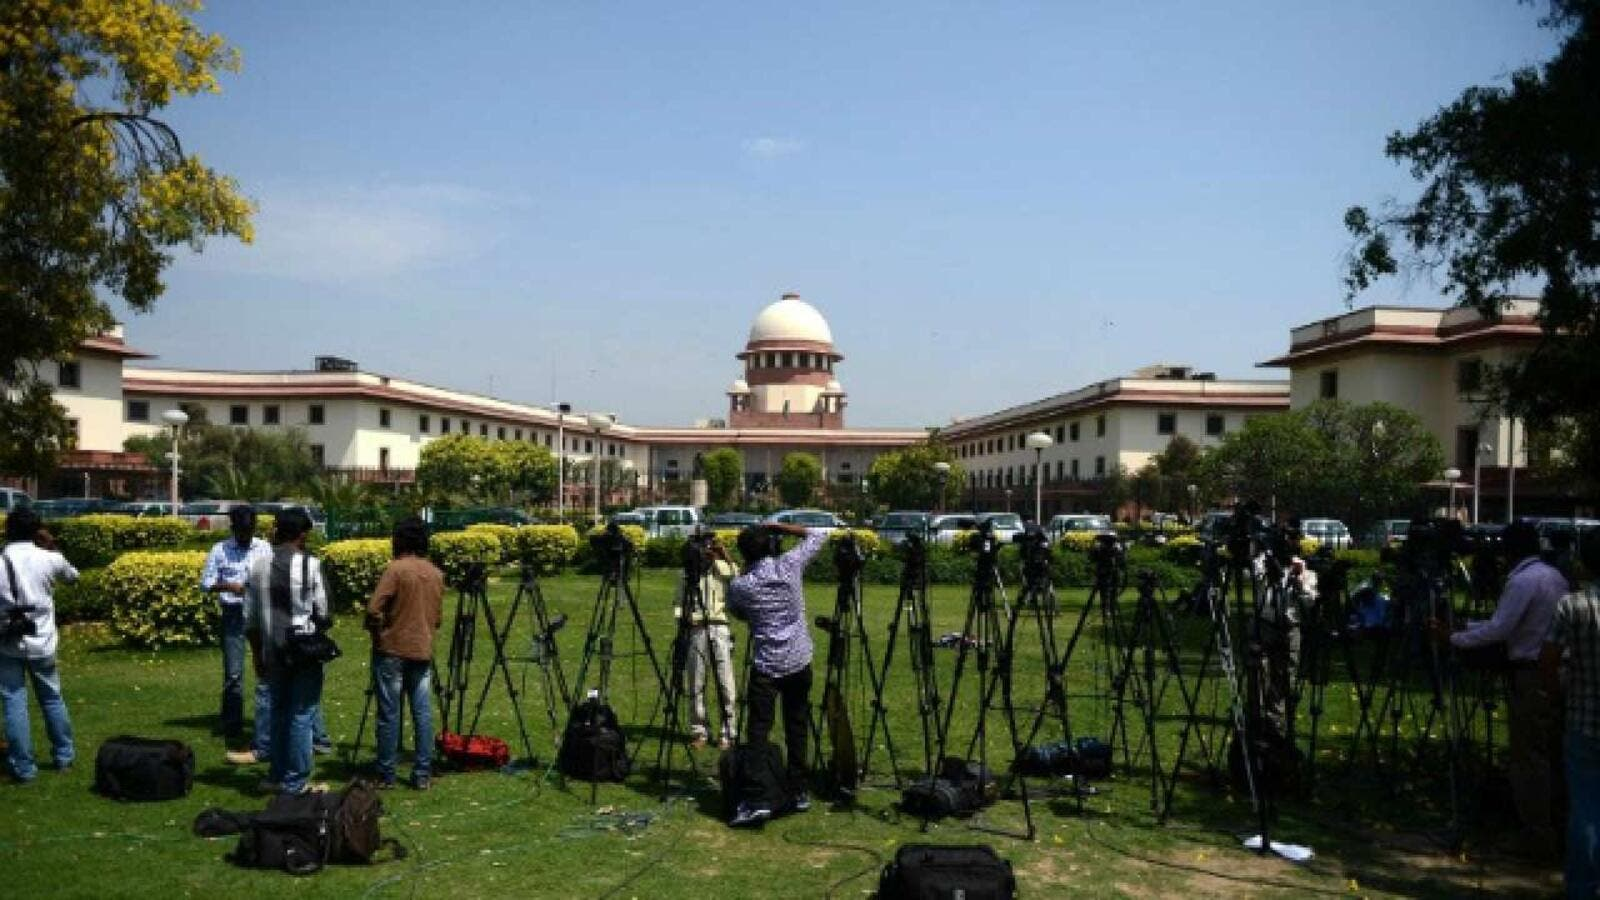 Media have closely covered the India's Supreme Court (AFP/File Photo)